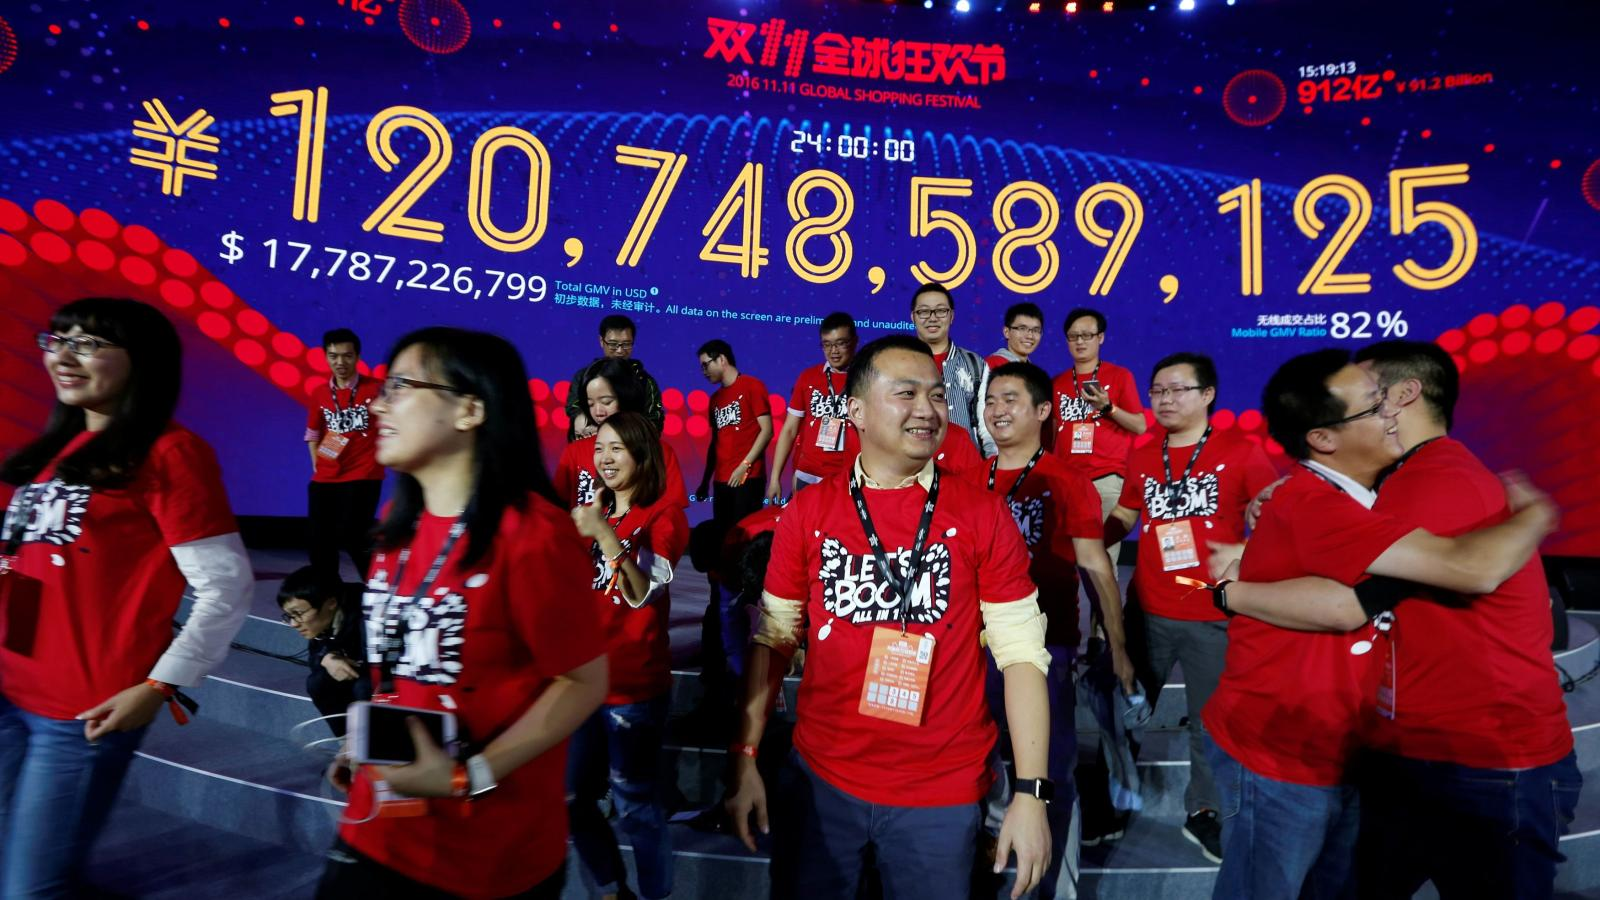 Ten years of singles day chinas ridiculously huge shopping festival